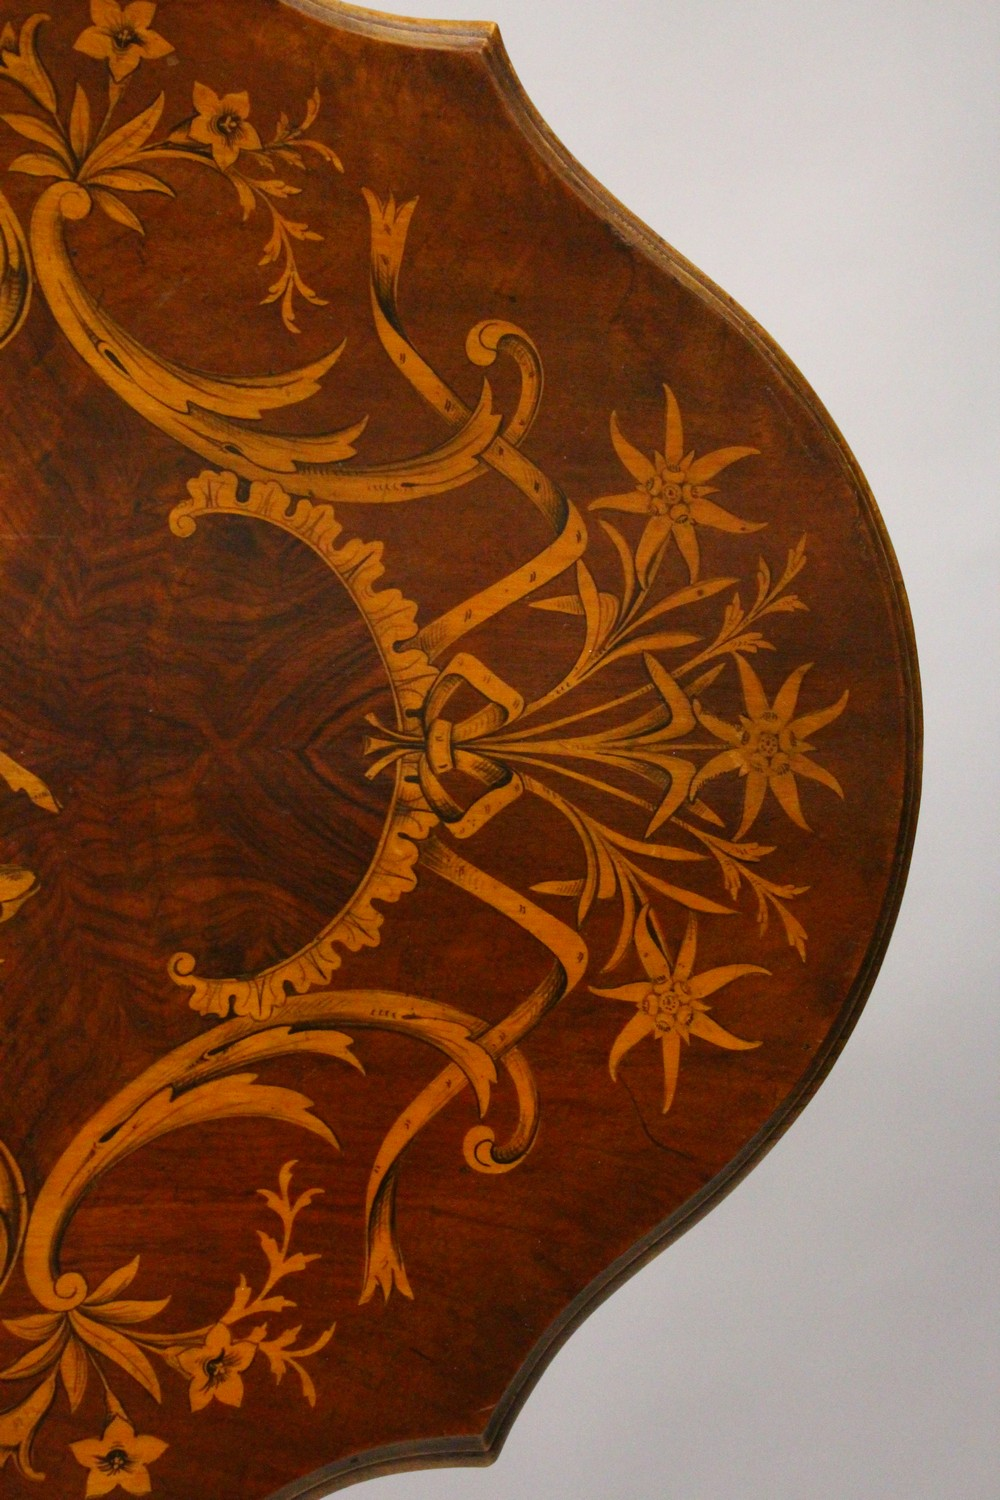 A LATE 19TH CENTURY BLACK FOREST INLAID TABLE. 2ft 1.5ins wide x 2ft 7ins high. - Image 5 of 14